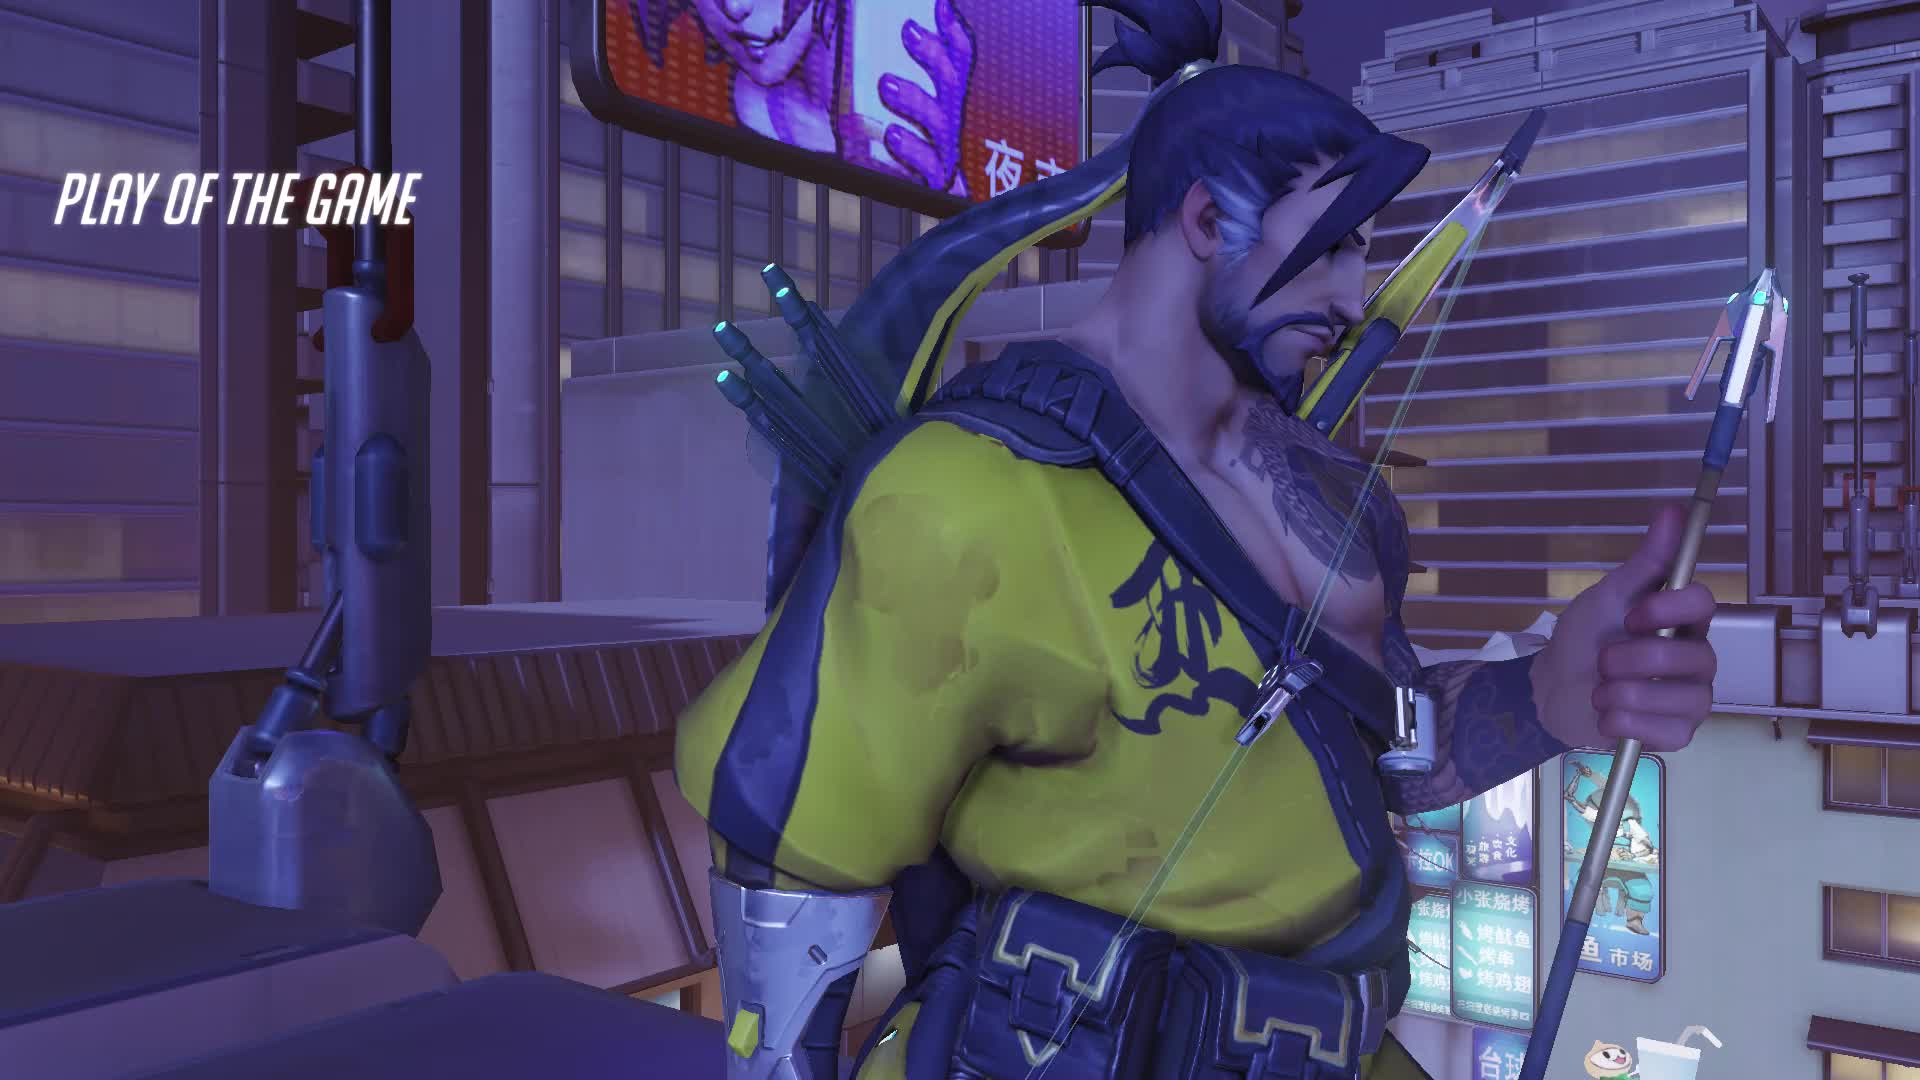 Overwatch, highlight, prebuz's highlight 19-01-05 14-31-45 GIFs